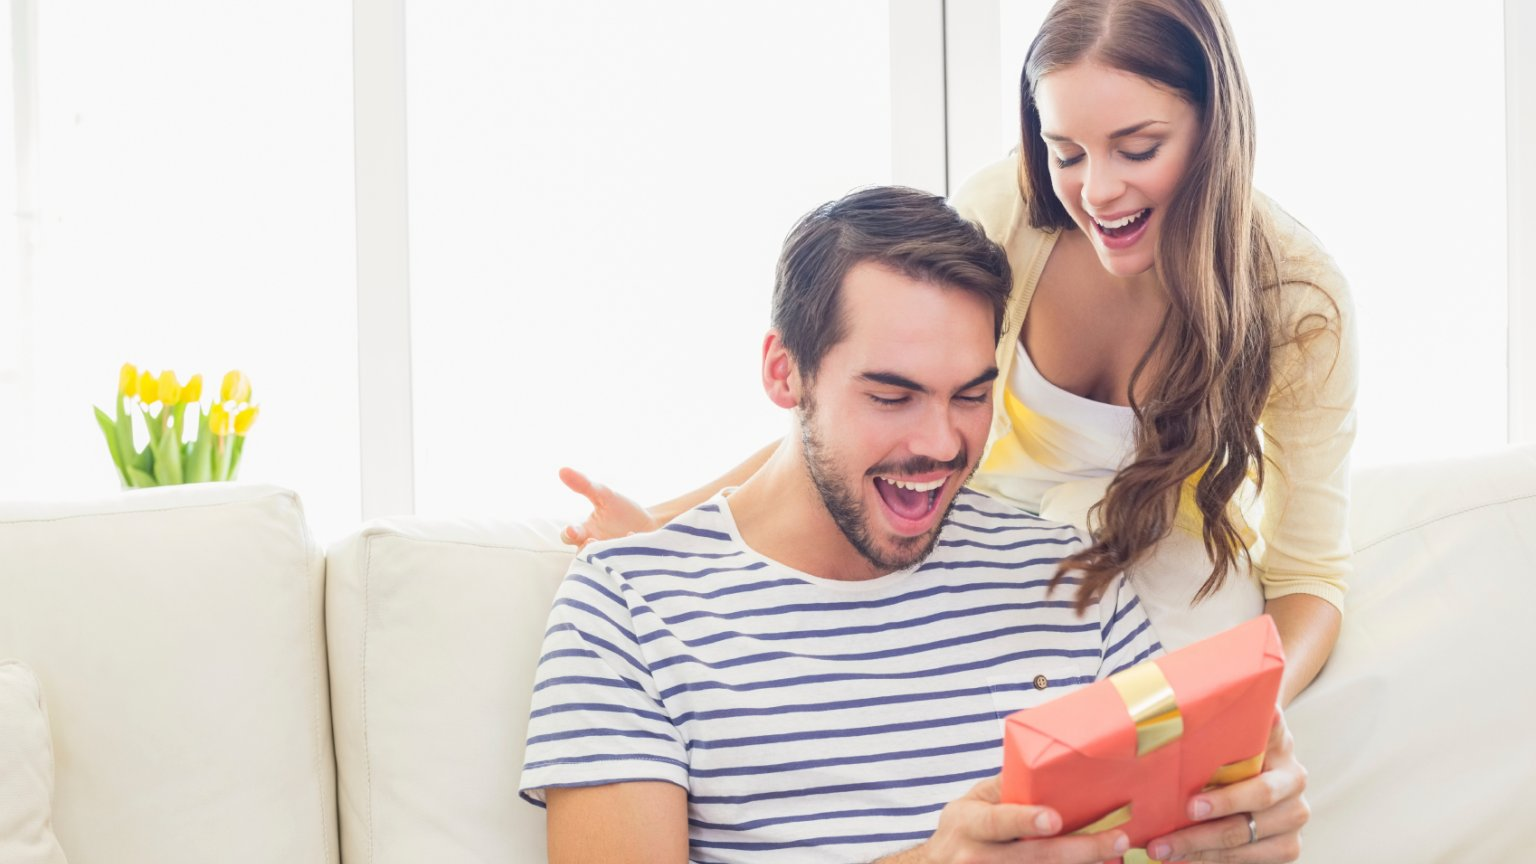 35 Astonishing Birthday Gift Ideas for Boyfriend Who Has Everything